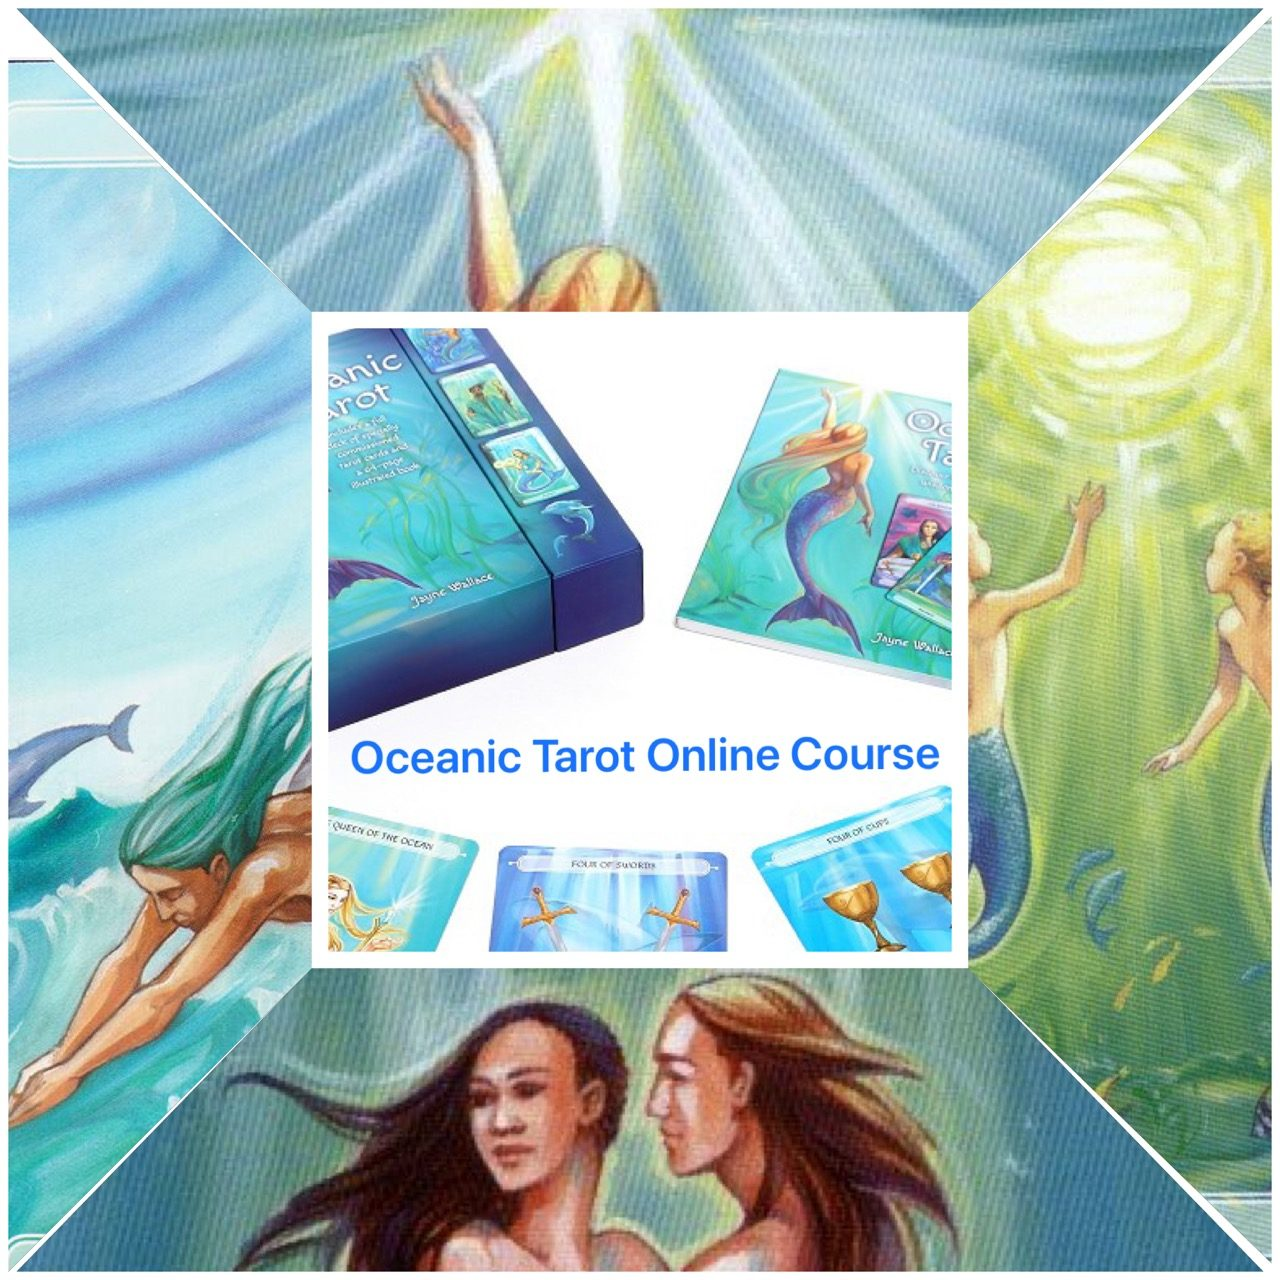 Oceanic Tarot Course - Pages - Week 12